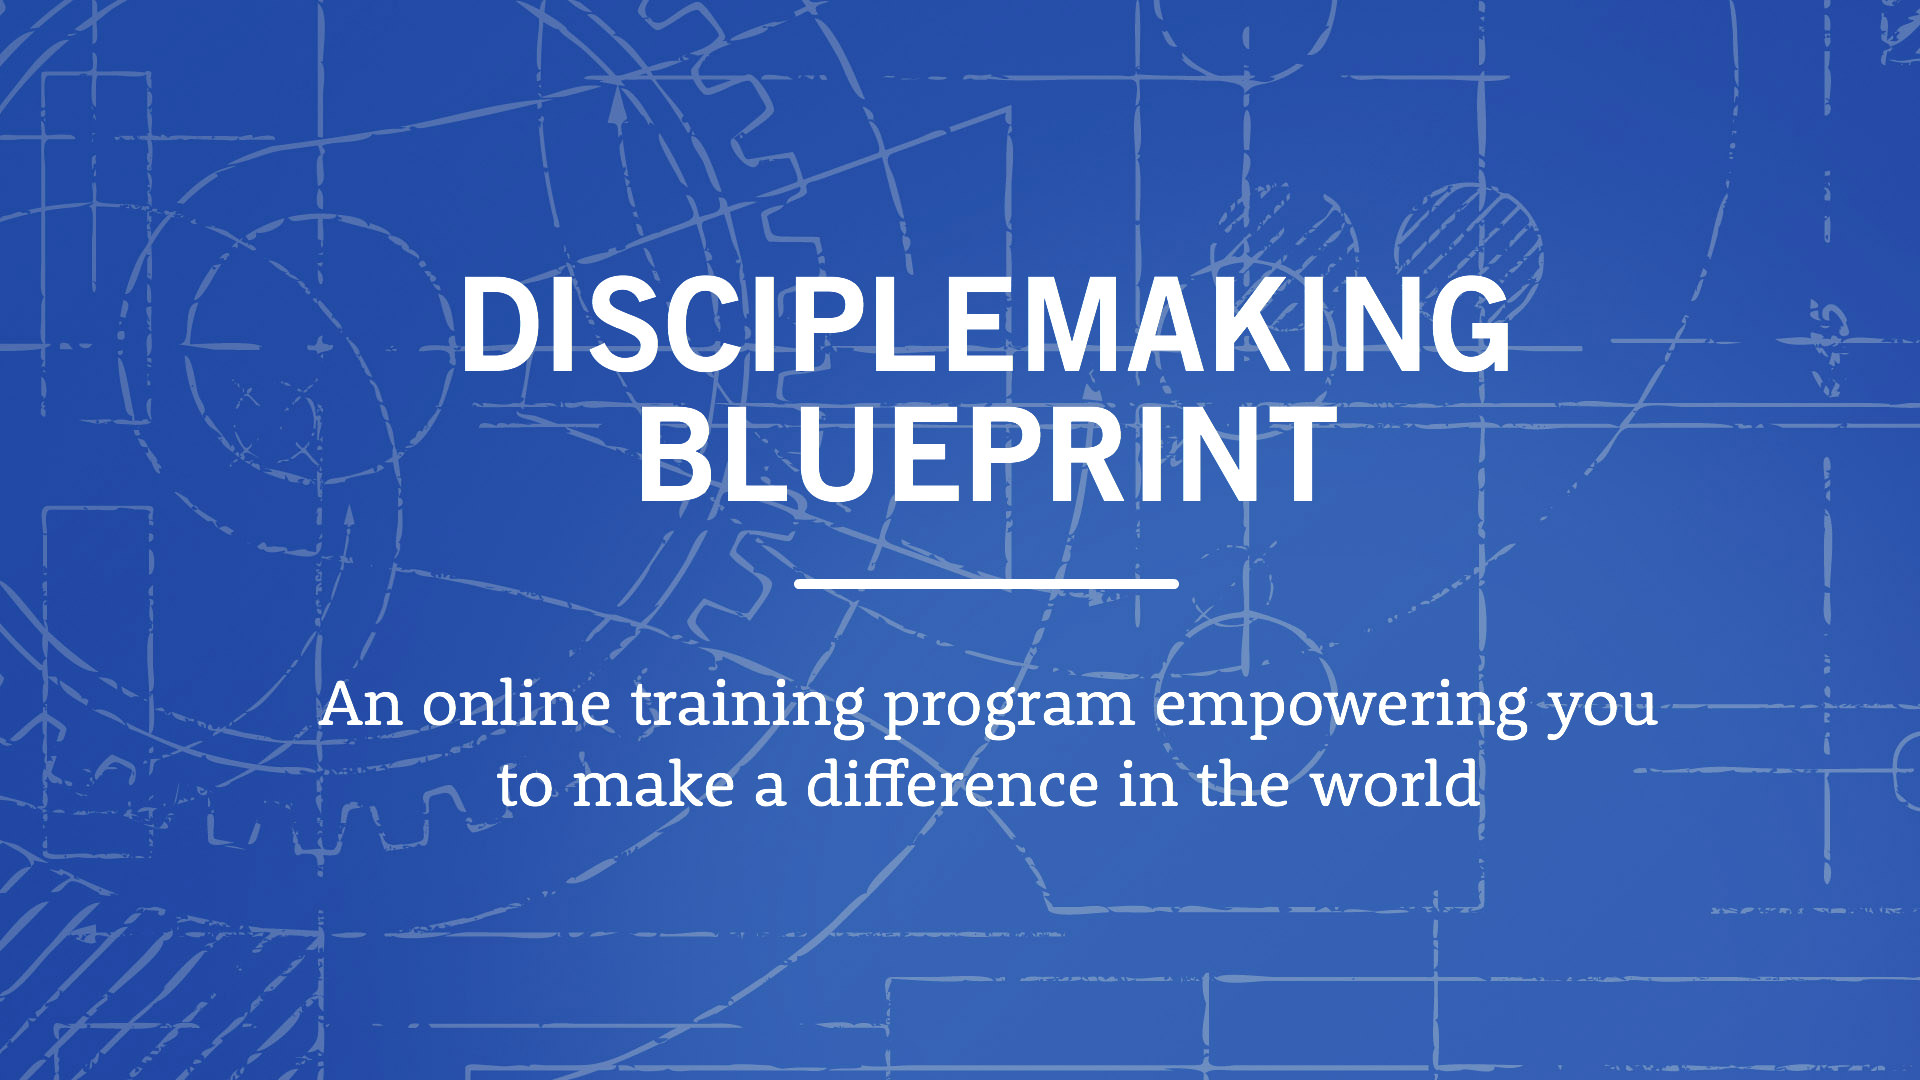 Your disciplemaking blueprint verge network malvernweather Image collections